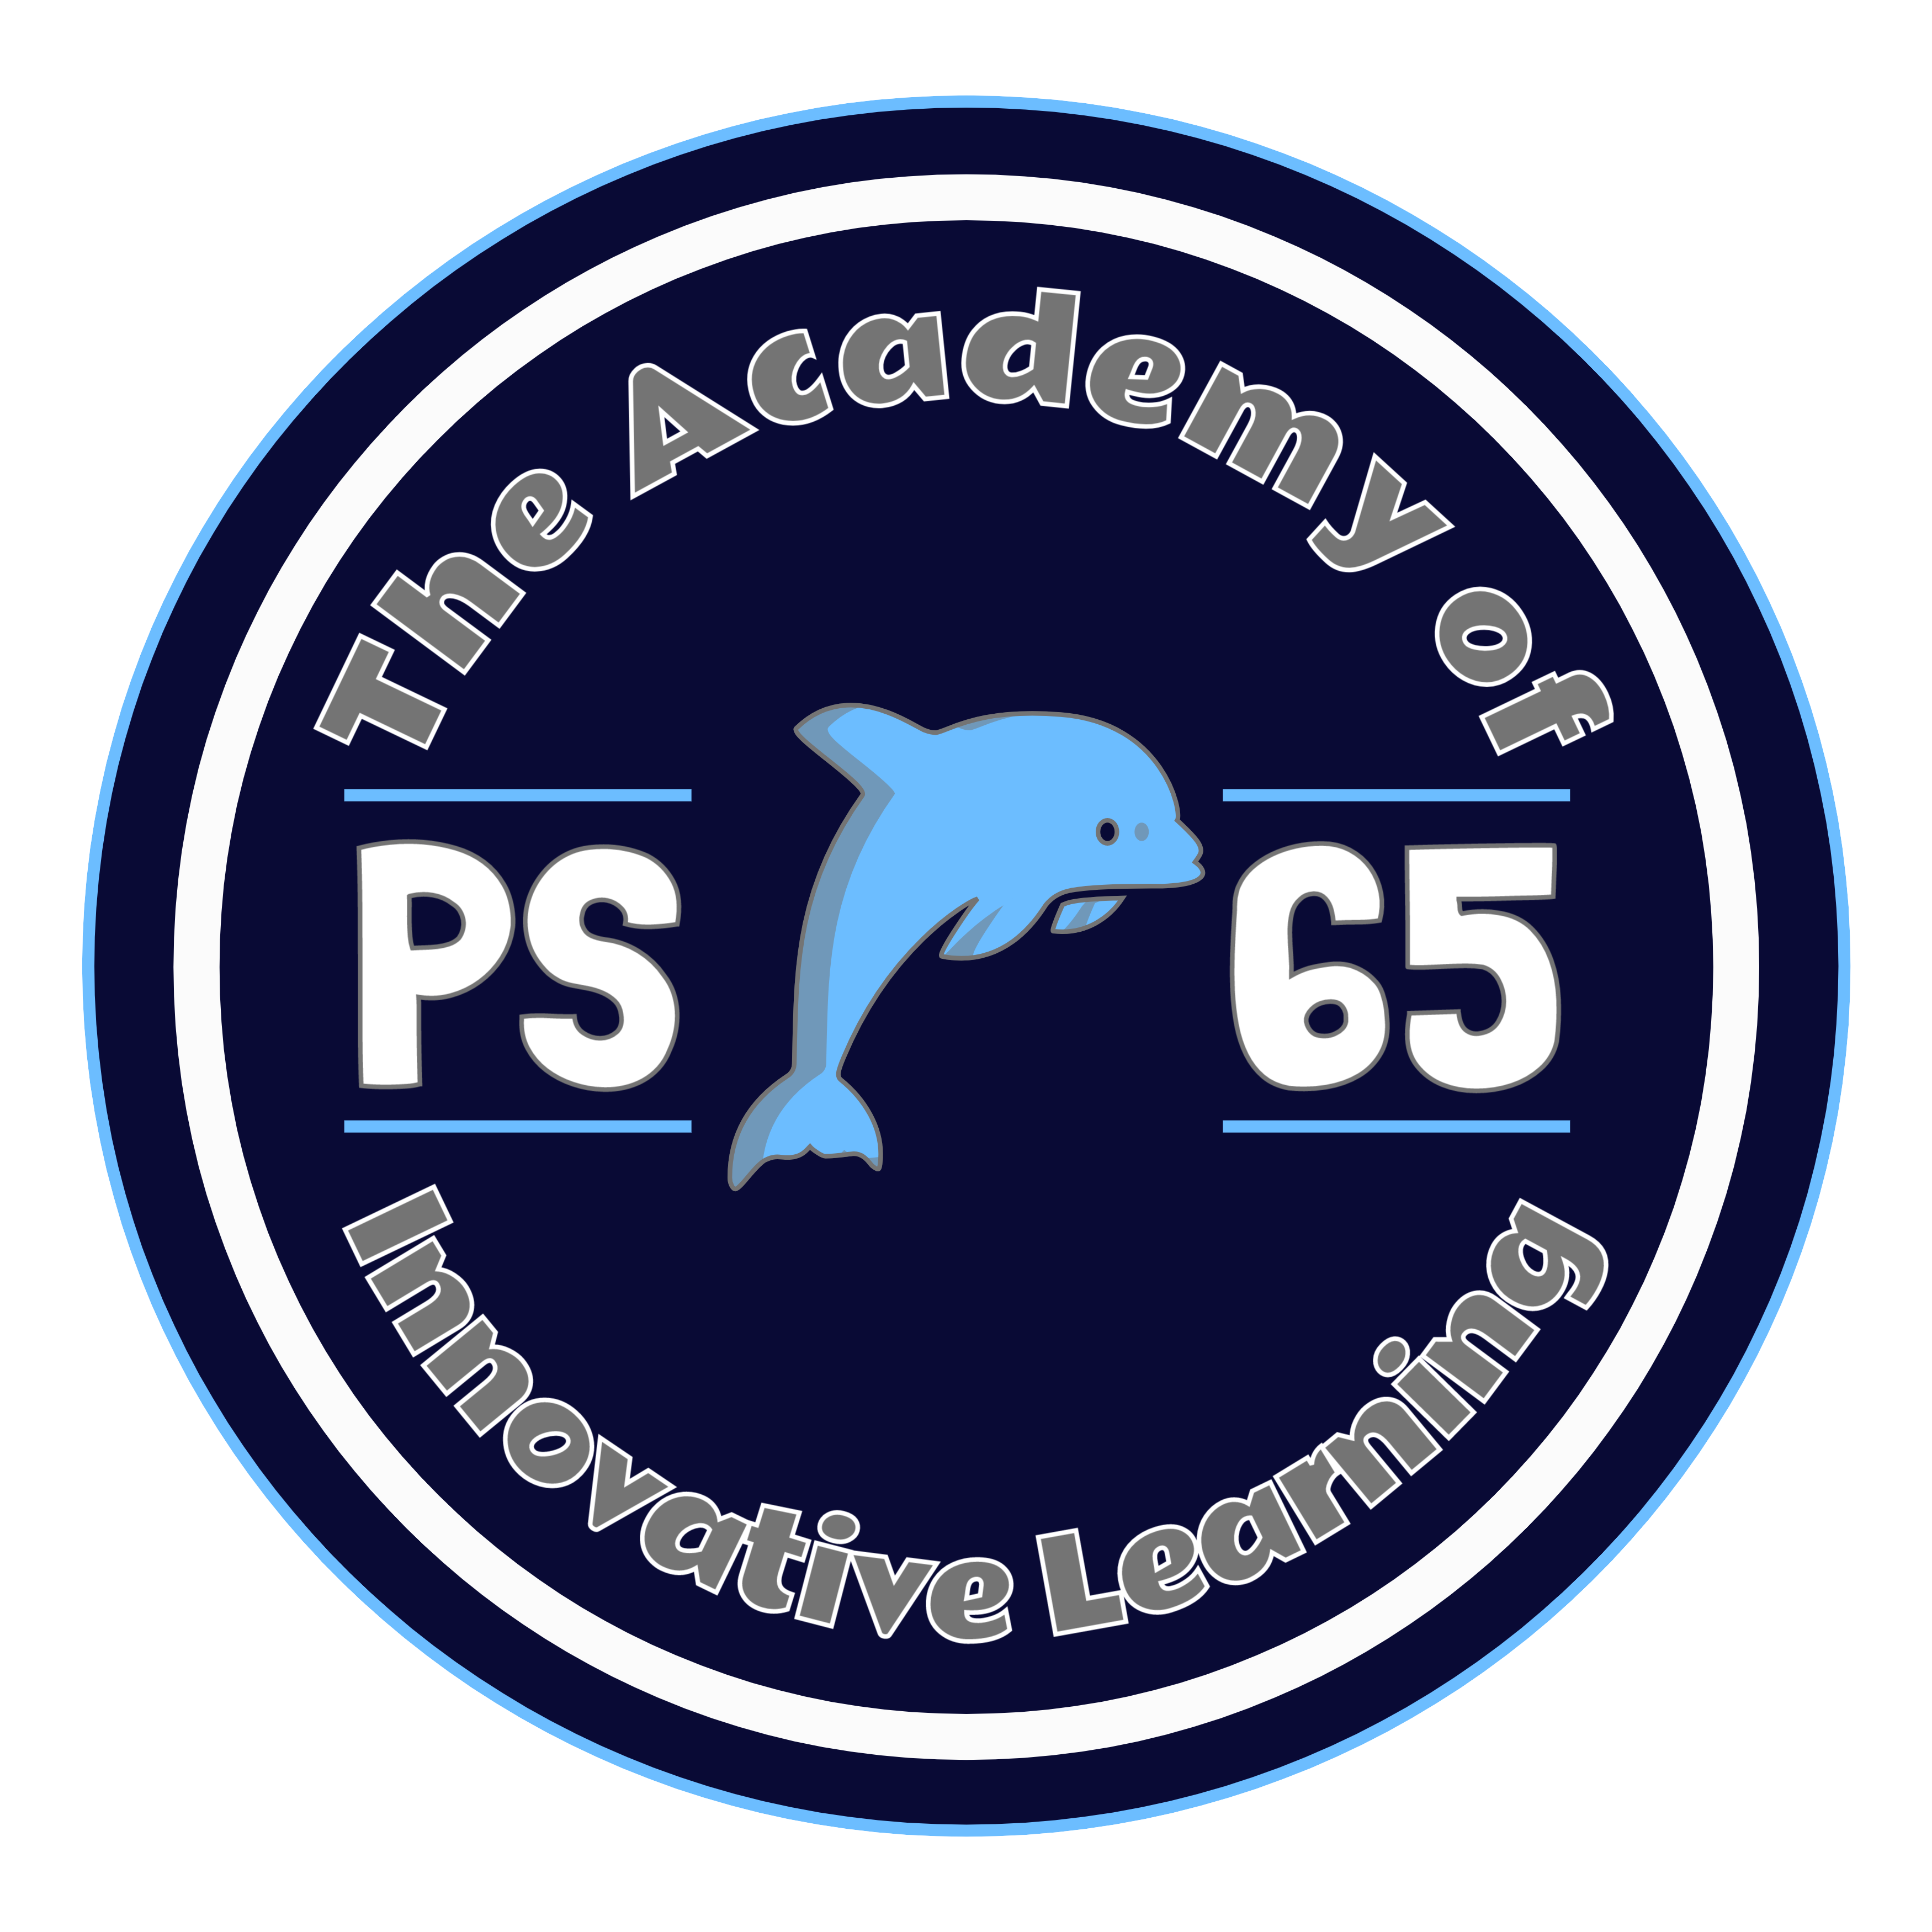 P.S. 65 Home Page